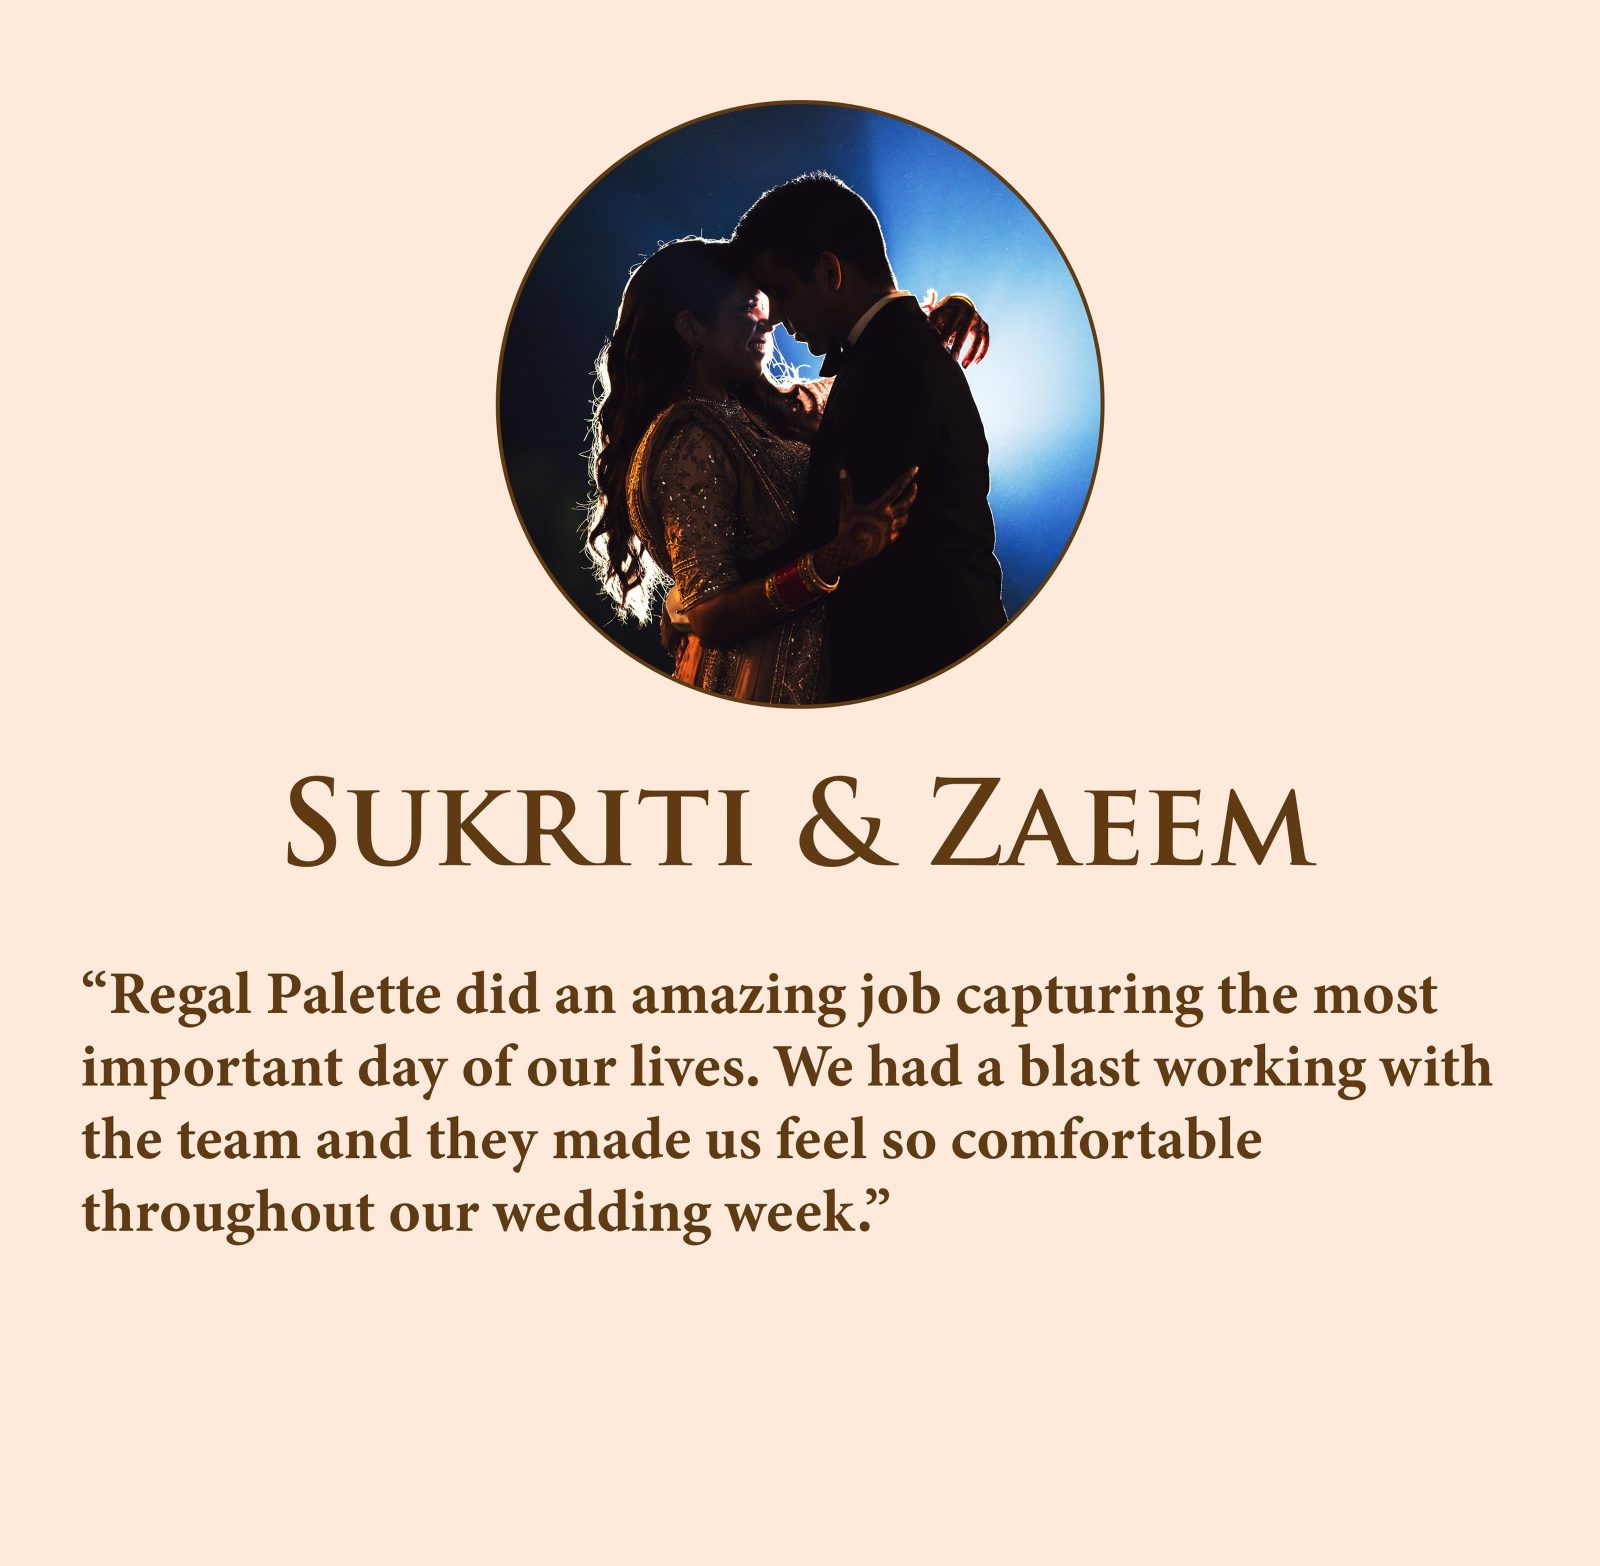 Regal Palette did an amazing job capturing the most important day of our lives. We had a blast working with the team and they made us feel so comfortable throughout our wedding week.